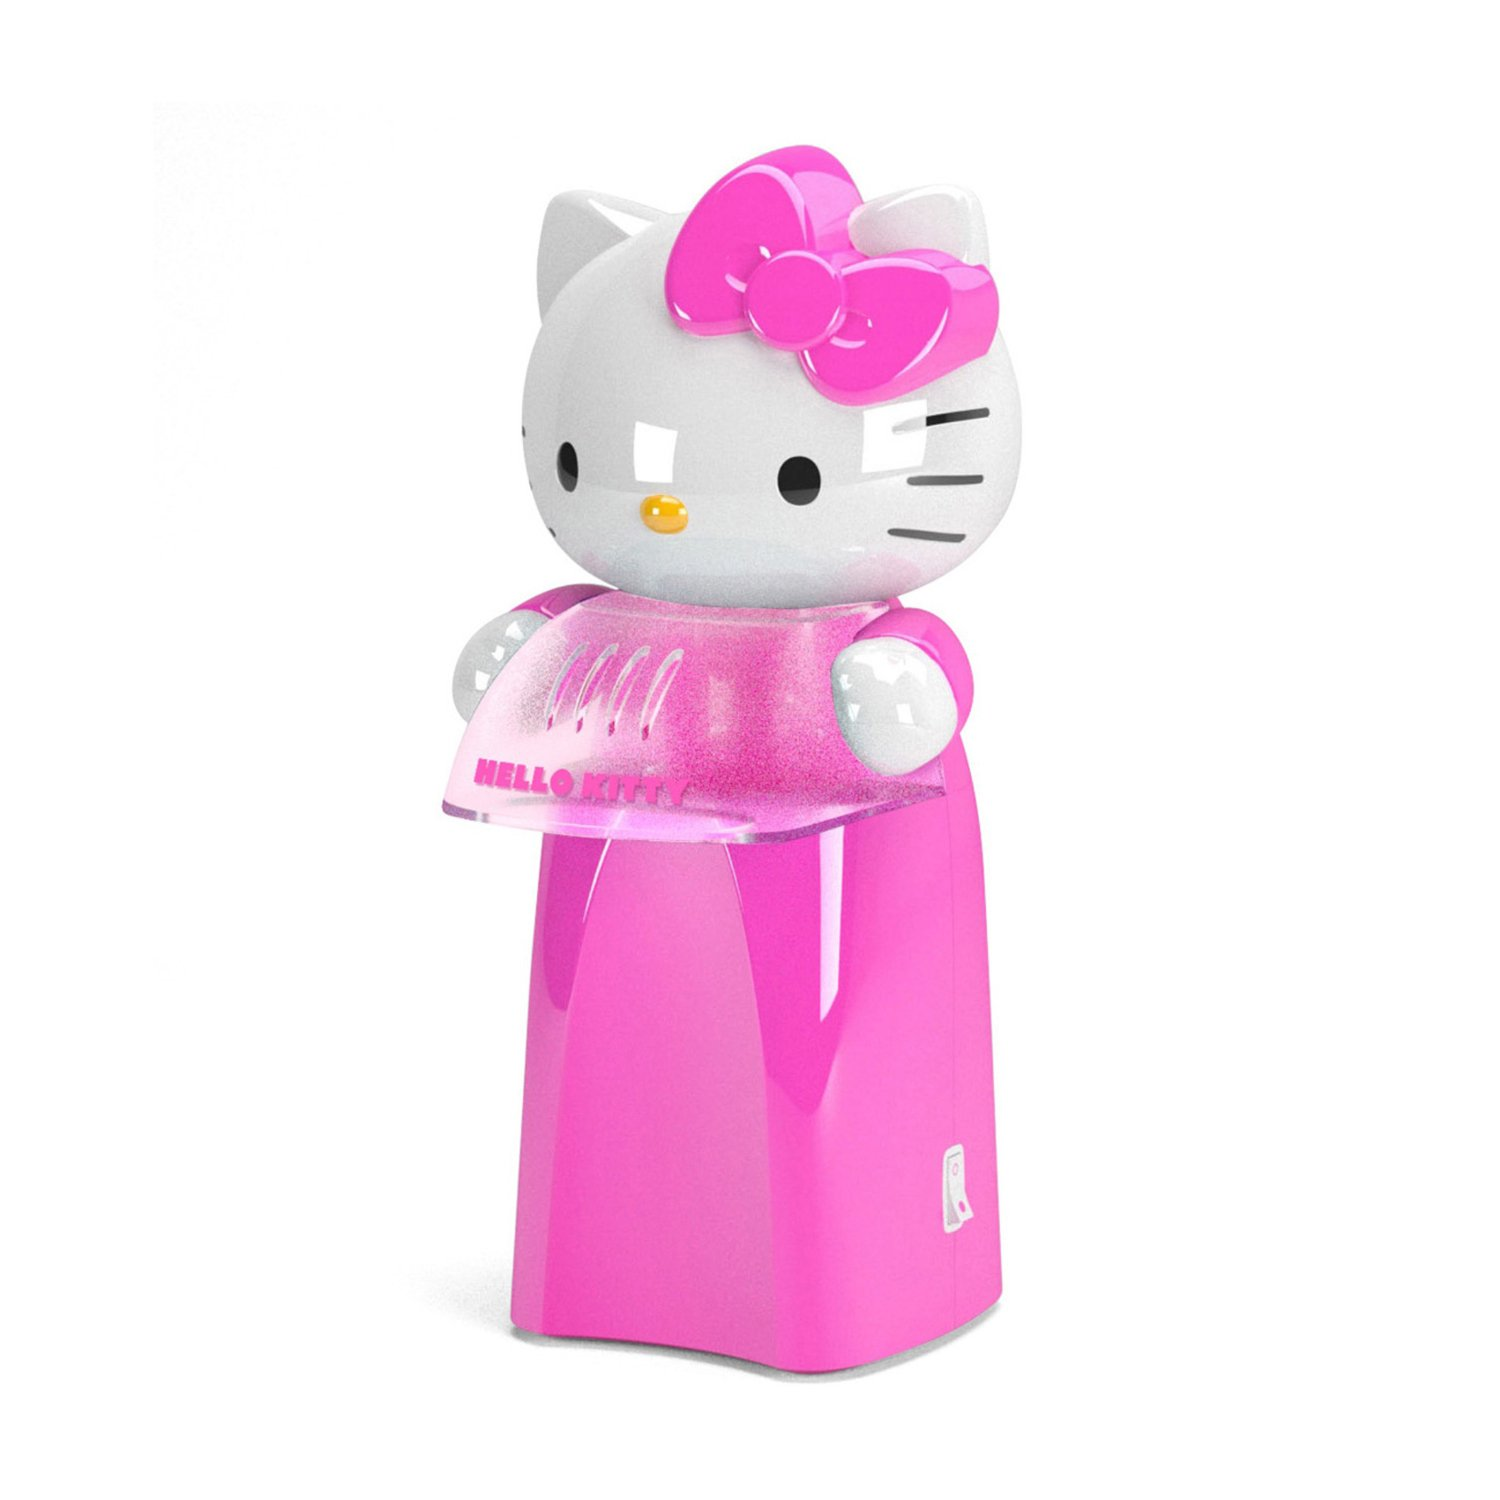 HELLO KITTY KT5235 Hot Air Popcorn Maker